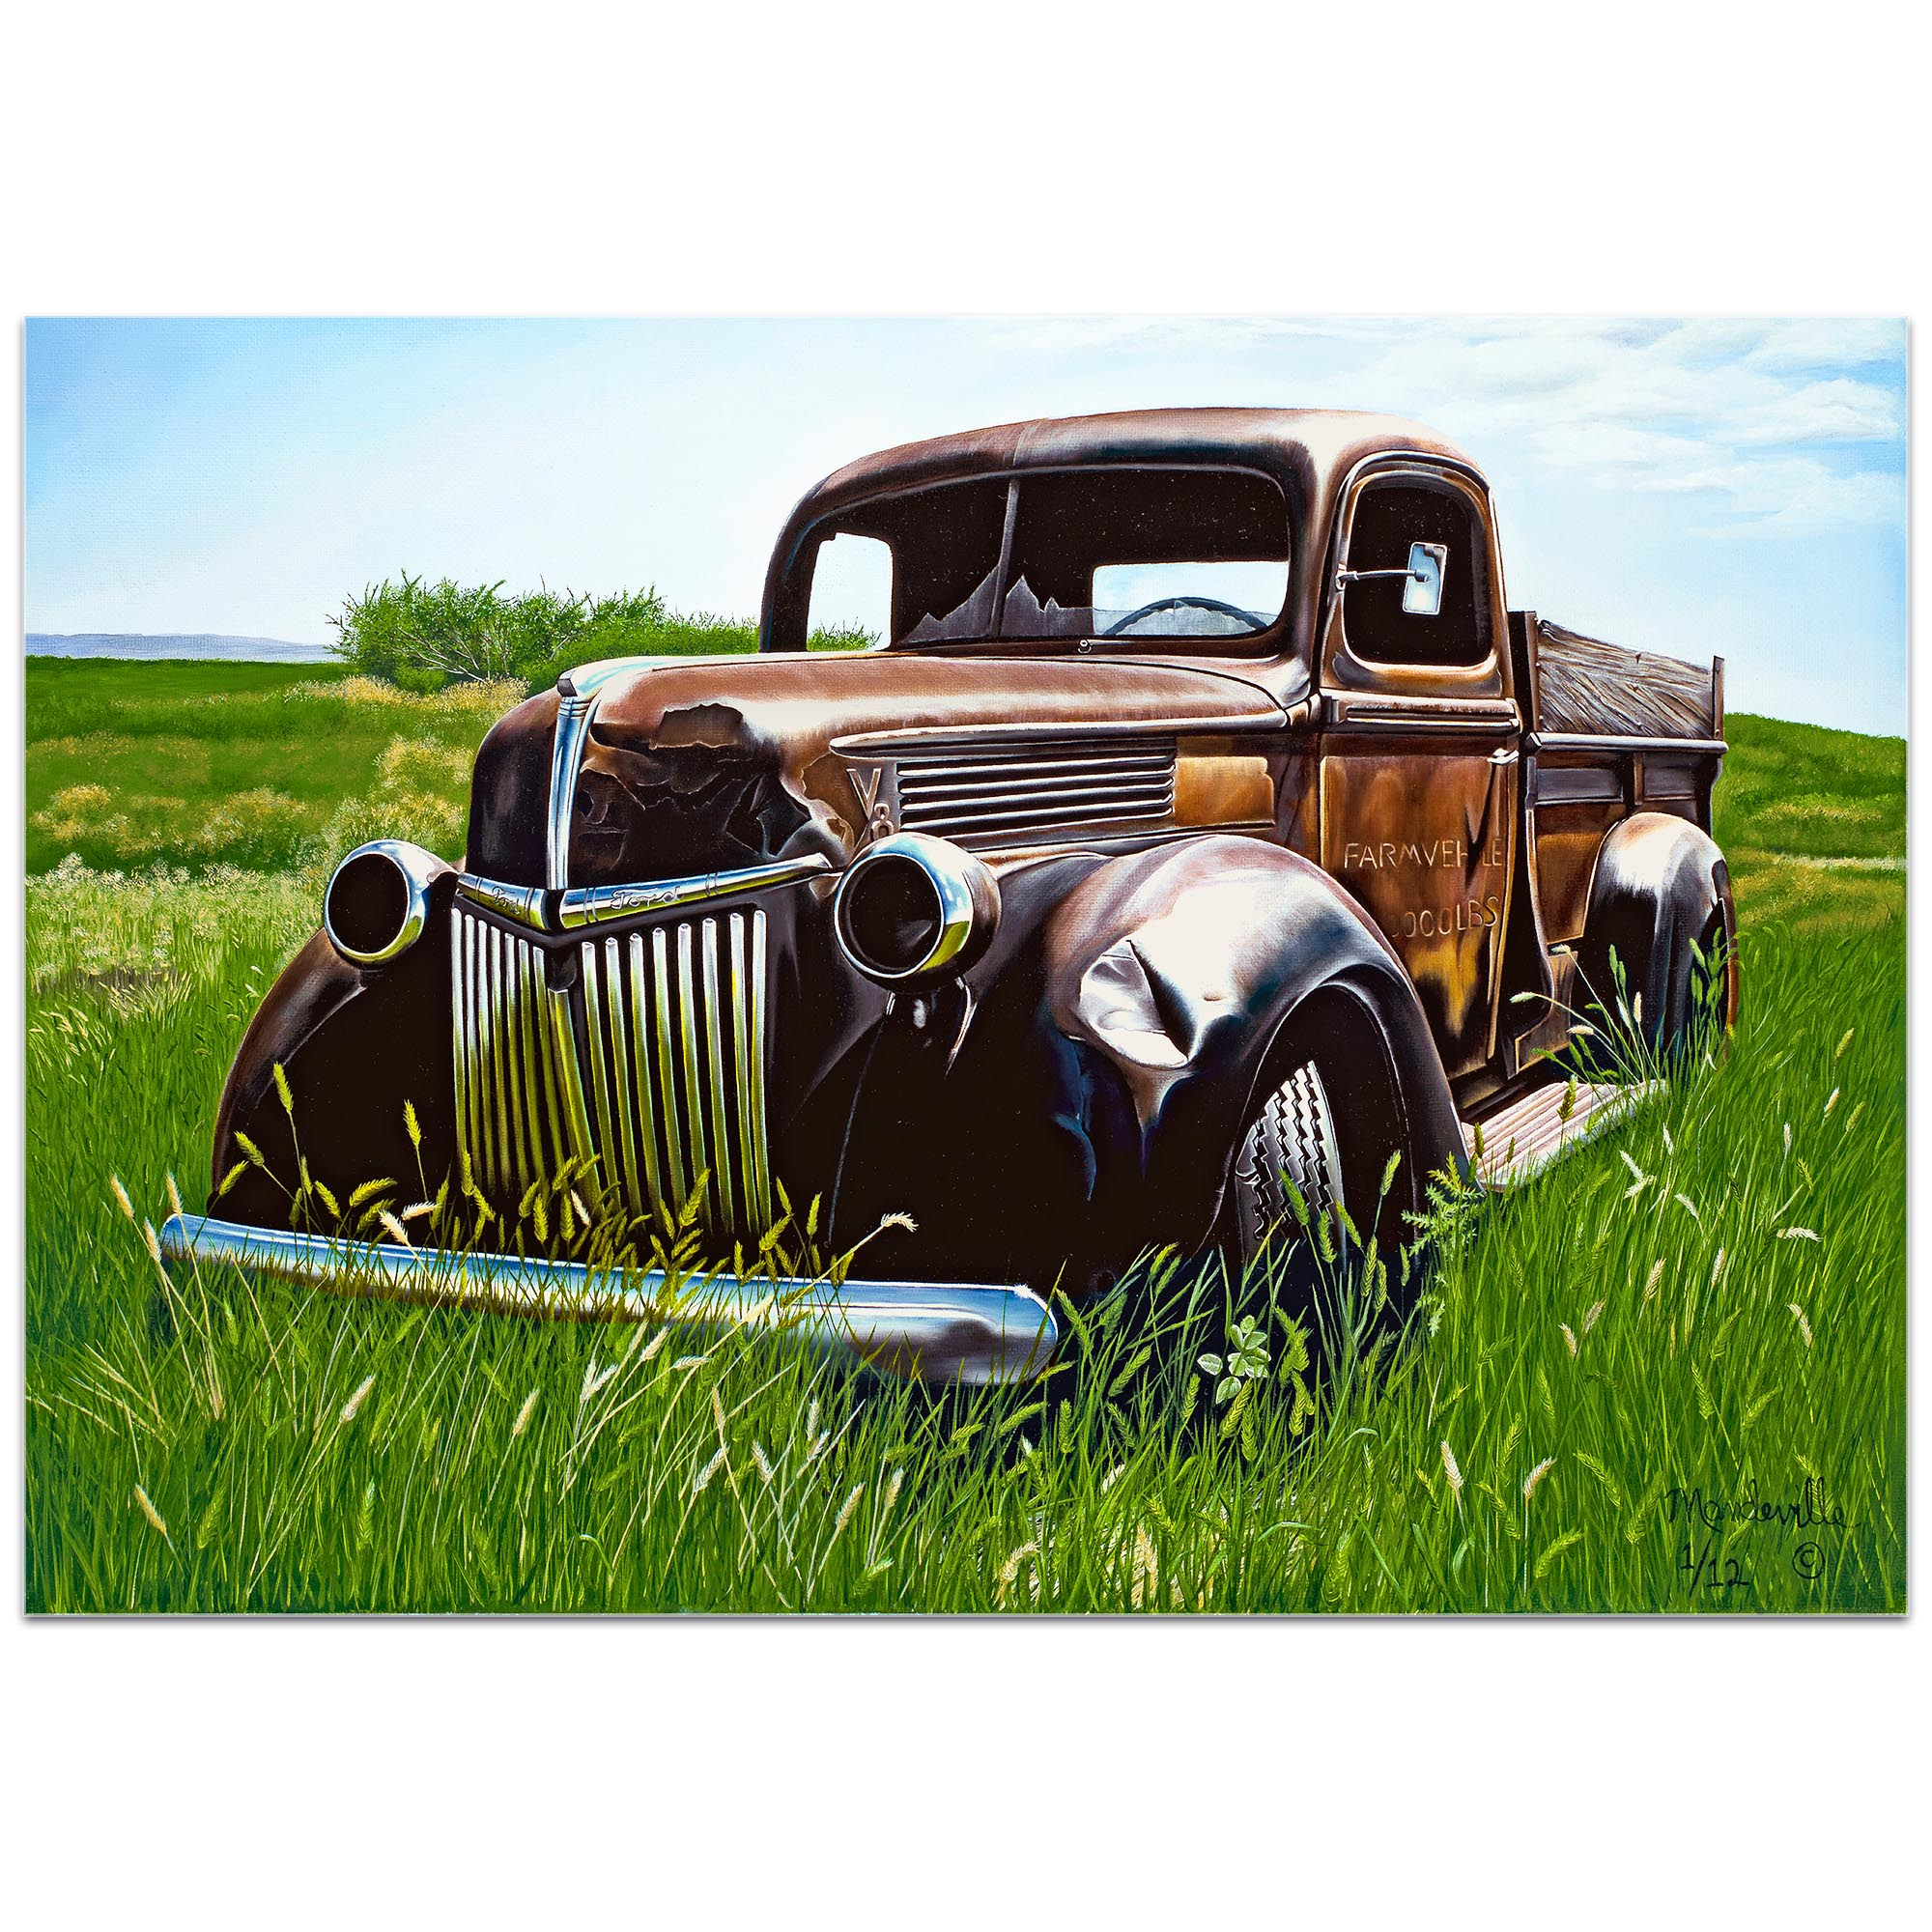 Americana Wall Art 'Out to Pasture' - Classic Trucks Decor on Metal or Plexiglass - Image 2